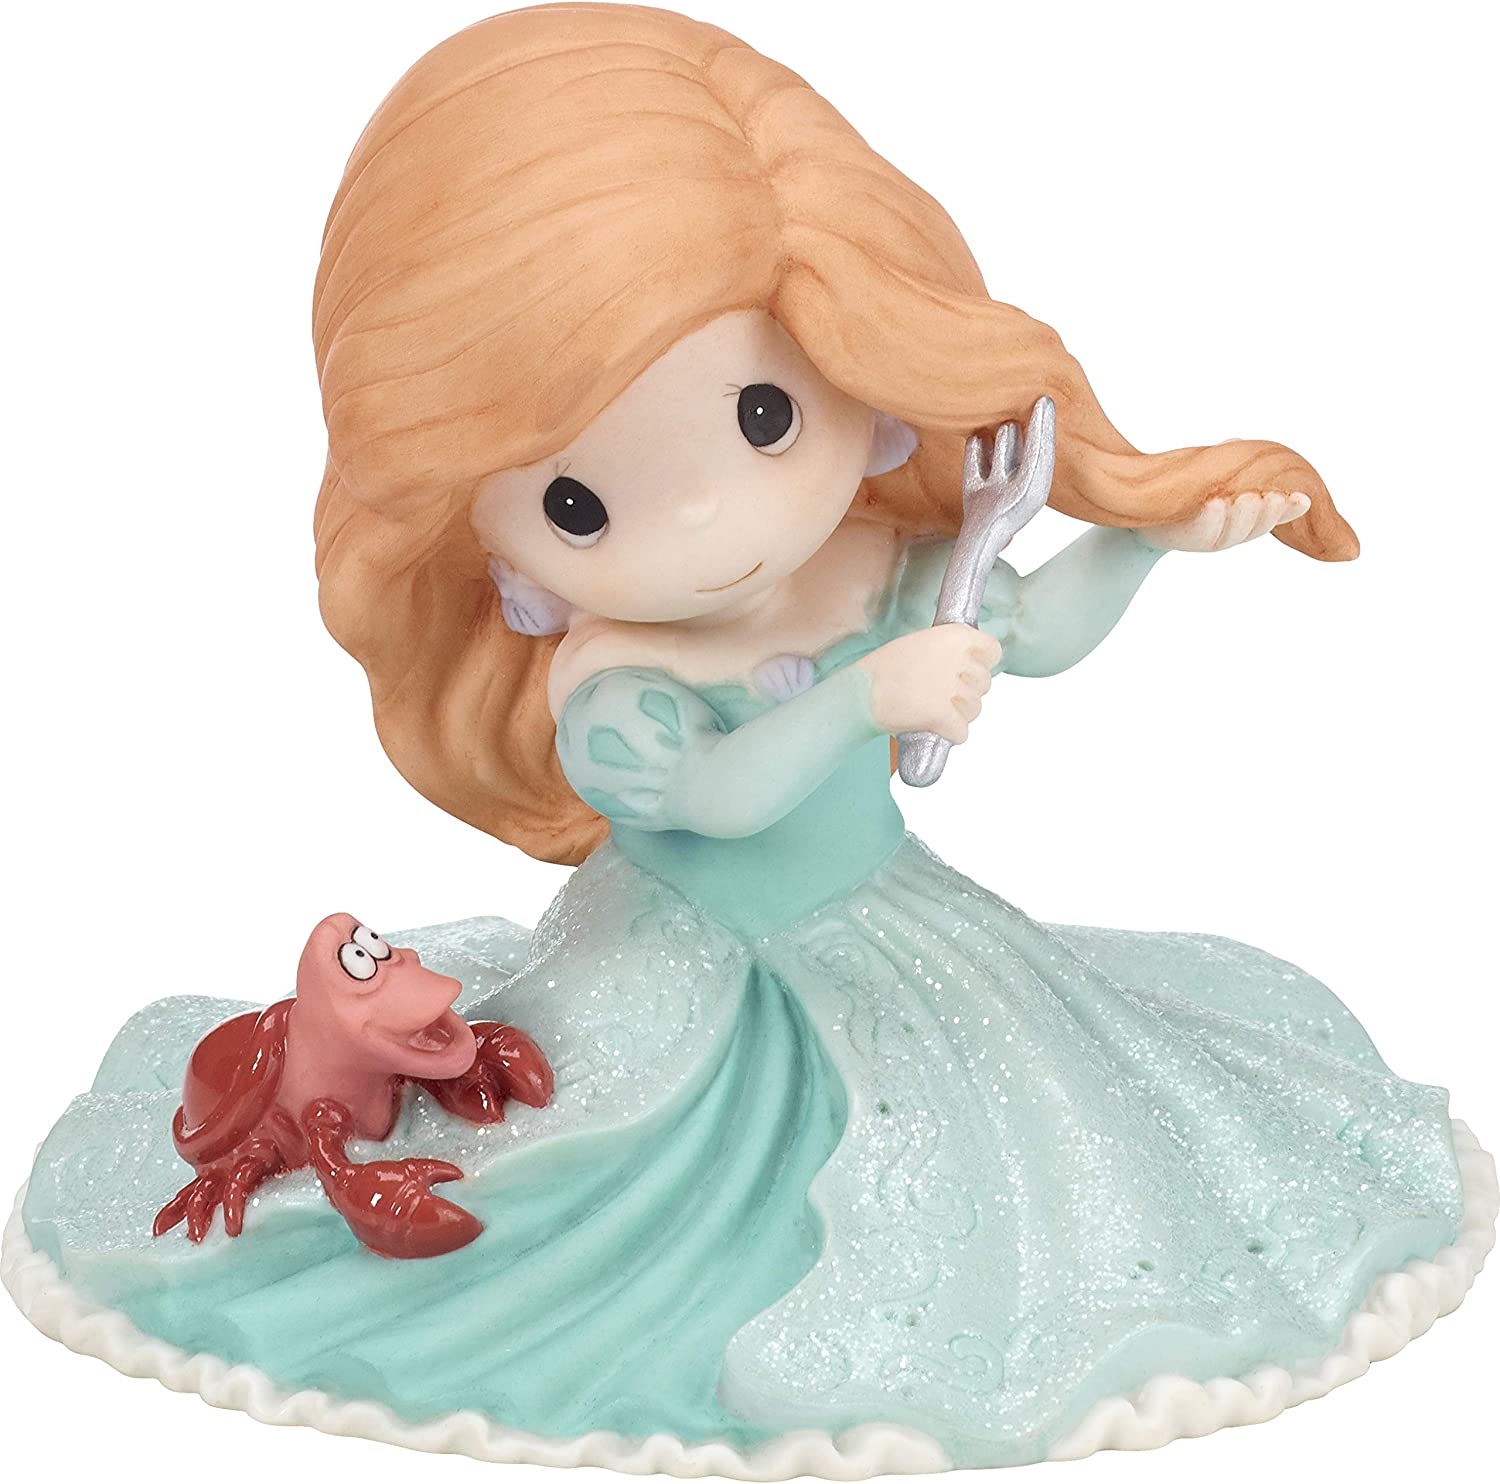 Precious Moments Disney Showcase You Fill My World Ariel And Sebastian The Little Mermaid Bisque Porcelain Figurine 182092